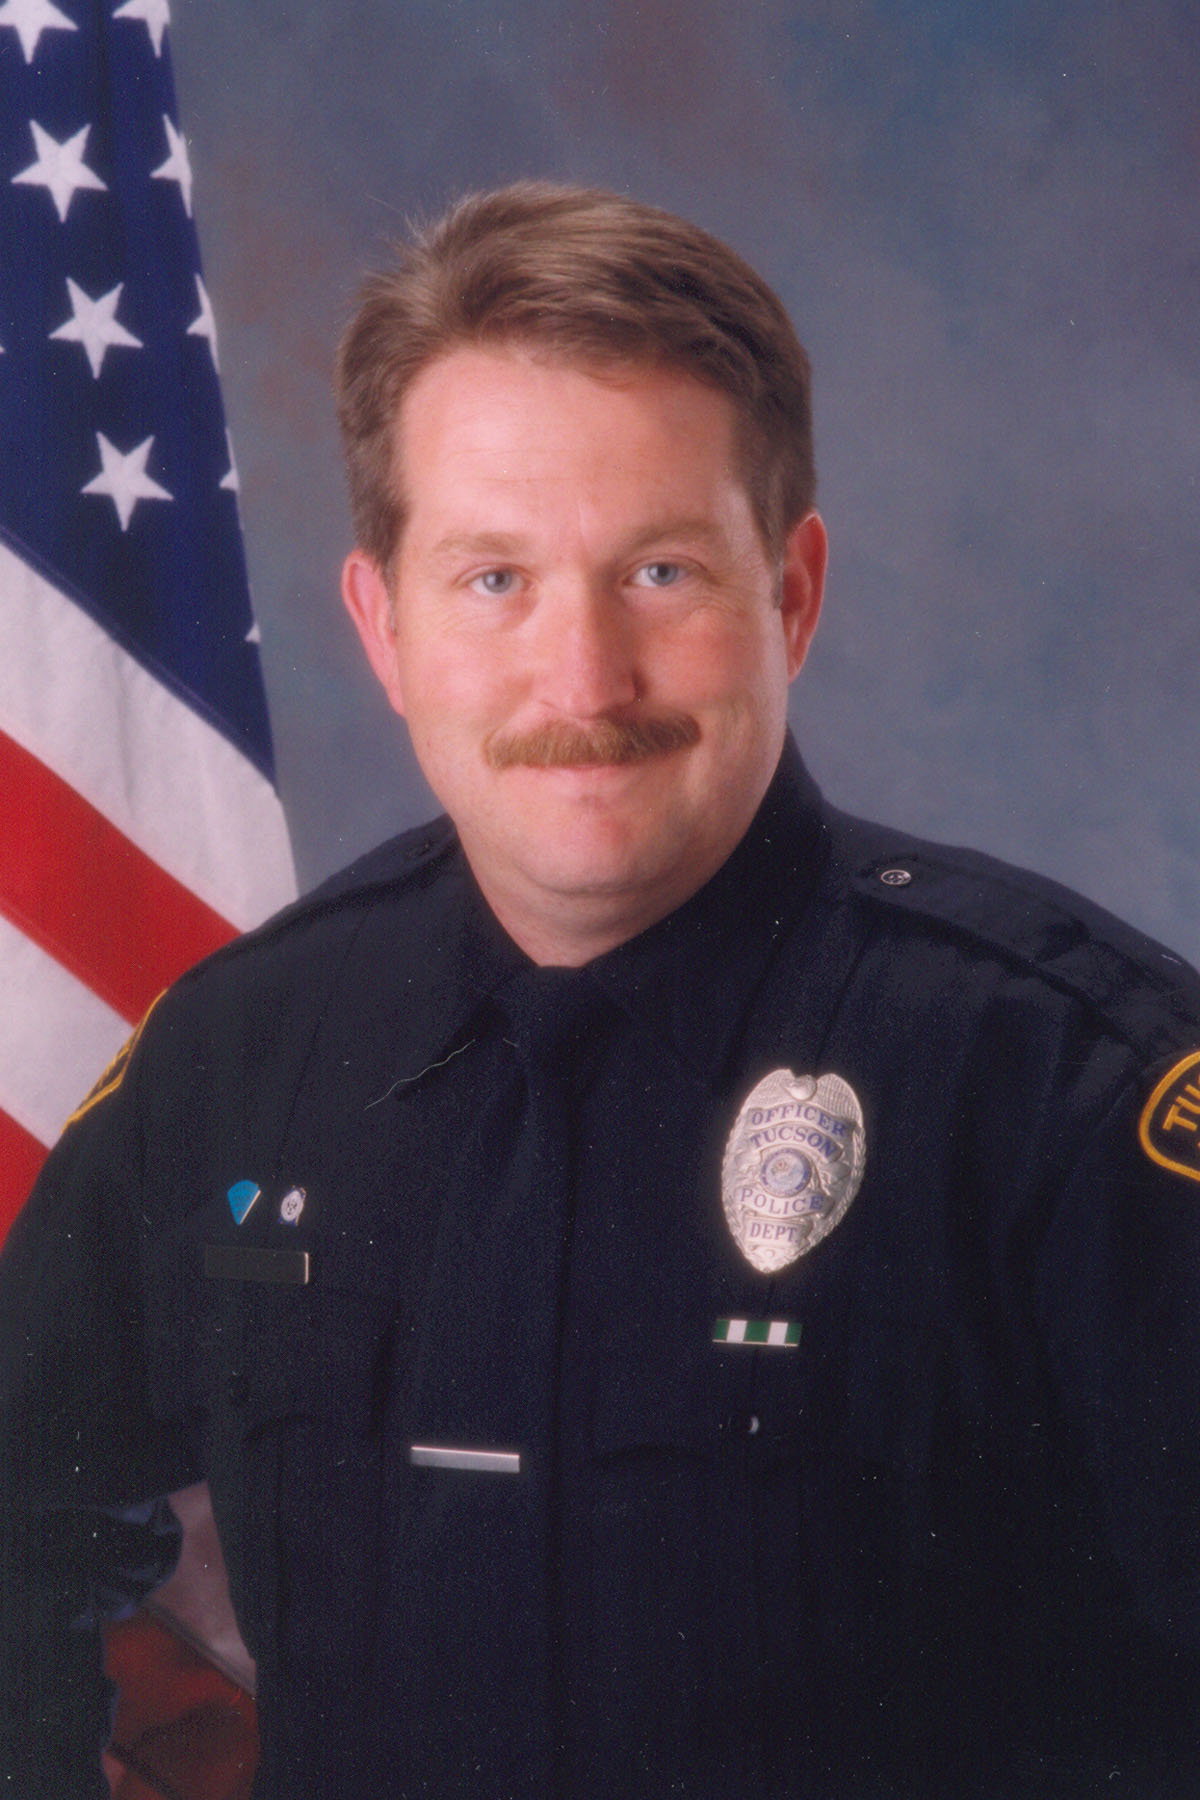 OfficerPatrick kent HardestyTucson Police DepartmentEnd of Watch:Monday, May 26, 2003 - Officer Patrick Hardesty was shot and killed while investigating a hit-and-run traffic accident at the intersection of Fort Lowell Road and Park Avenue.Shortly after arriving at the scene, Officer Hardesty located a suspect and a struggle ensued in which Officer Hardesty was shot five times and fatally wounded. Officer Hardesty was taken by ambulance to an area hospital where he was pronounced dead. Responding officers apprehended the suspect after a short foot pursuit. The suspect was found guilty of first-degree murder on February 25th, 2005, and was sentenced to death on March 10th, 2005.Officer Hardesty was a U.S. Marine Corps veteran. He had been with the Tucson Police Department as a reserve officer for 11 years, and as a full-time officer for 19 months. He is survived by his wife, three children, parents, two sisters, and a brother.